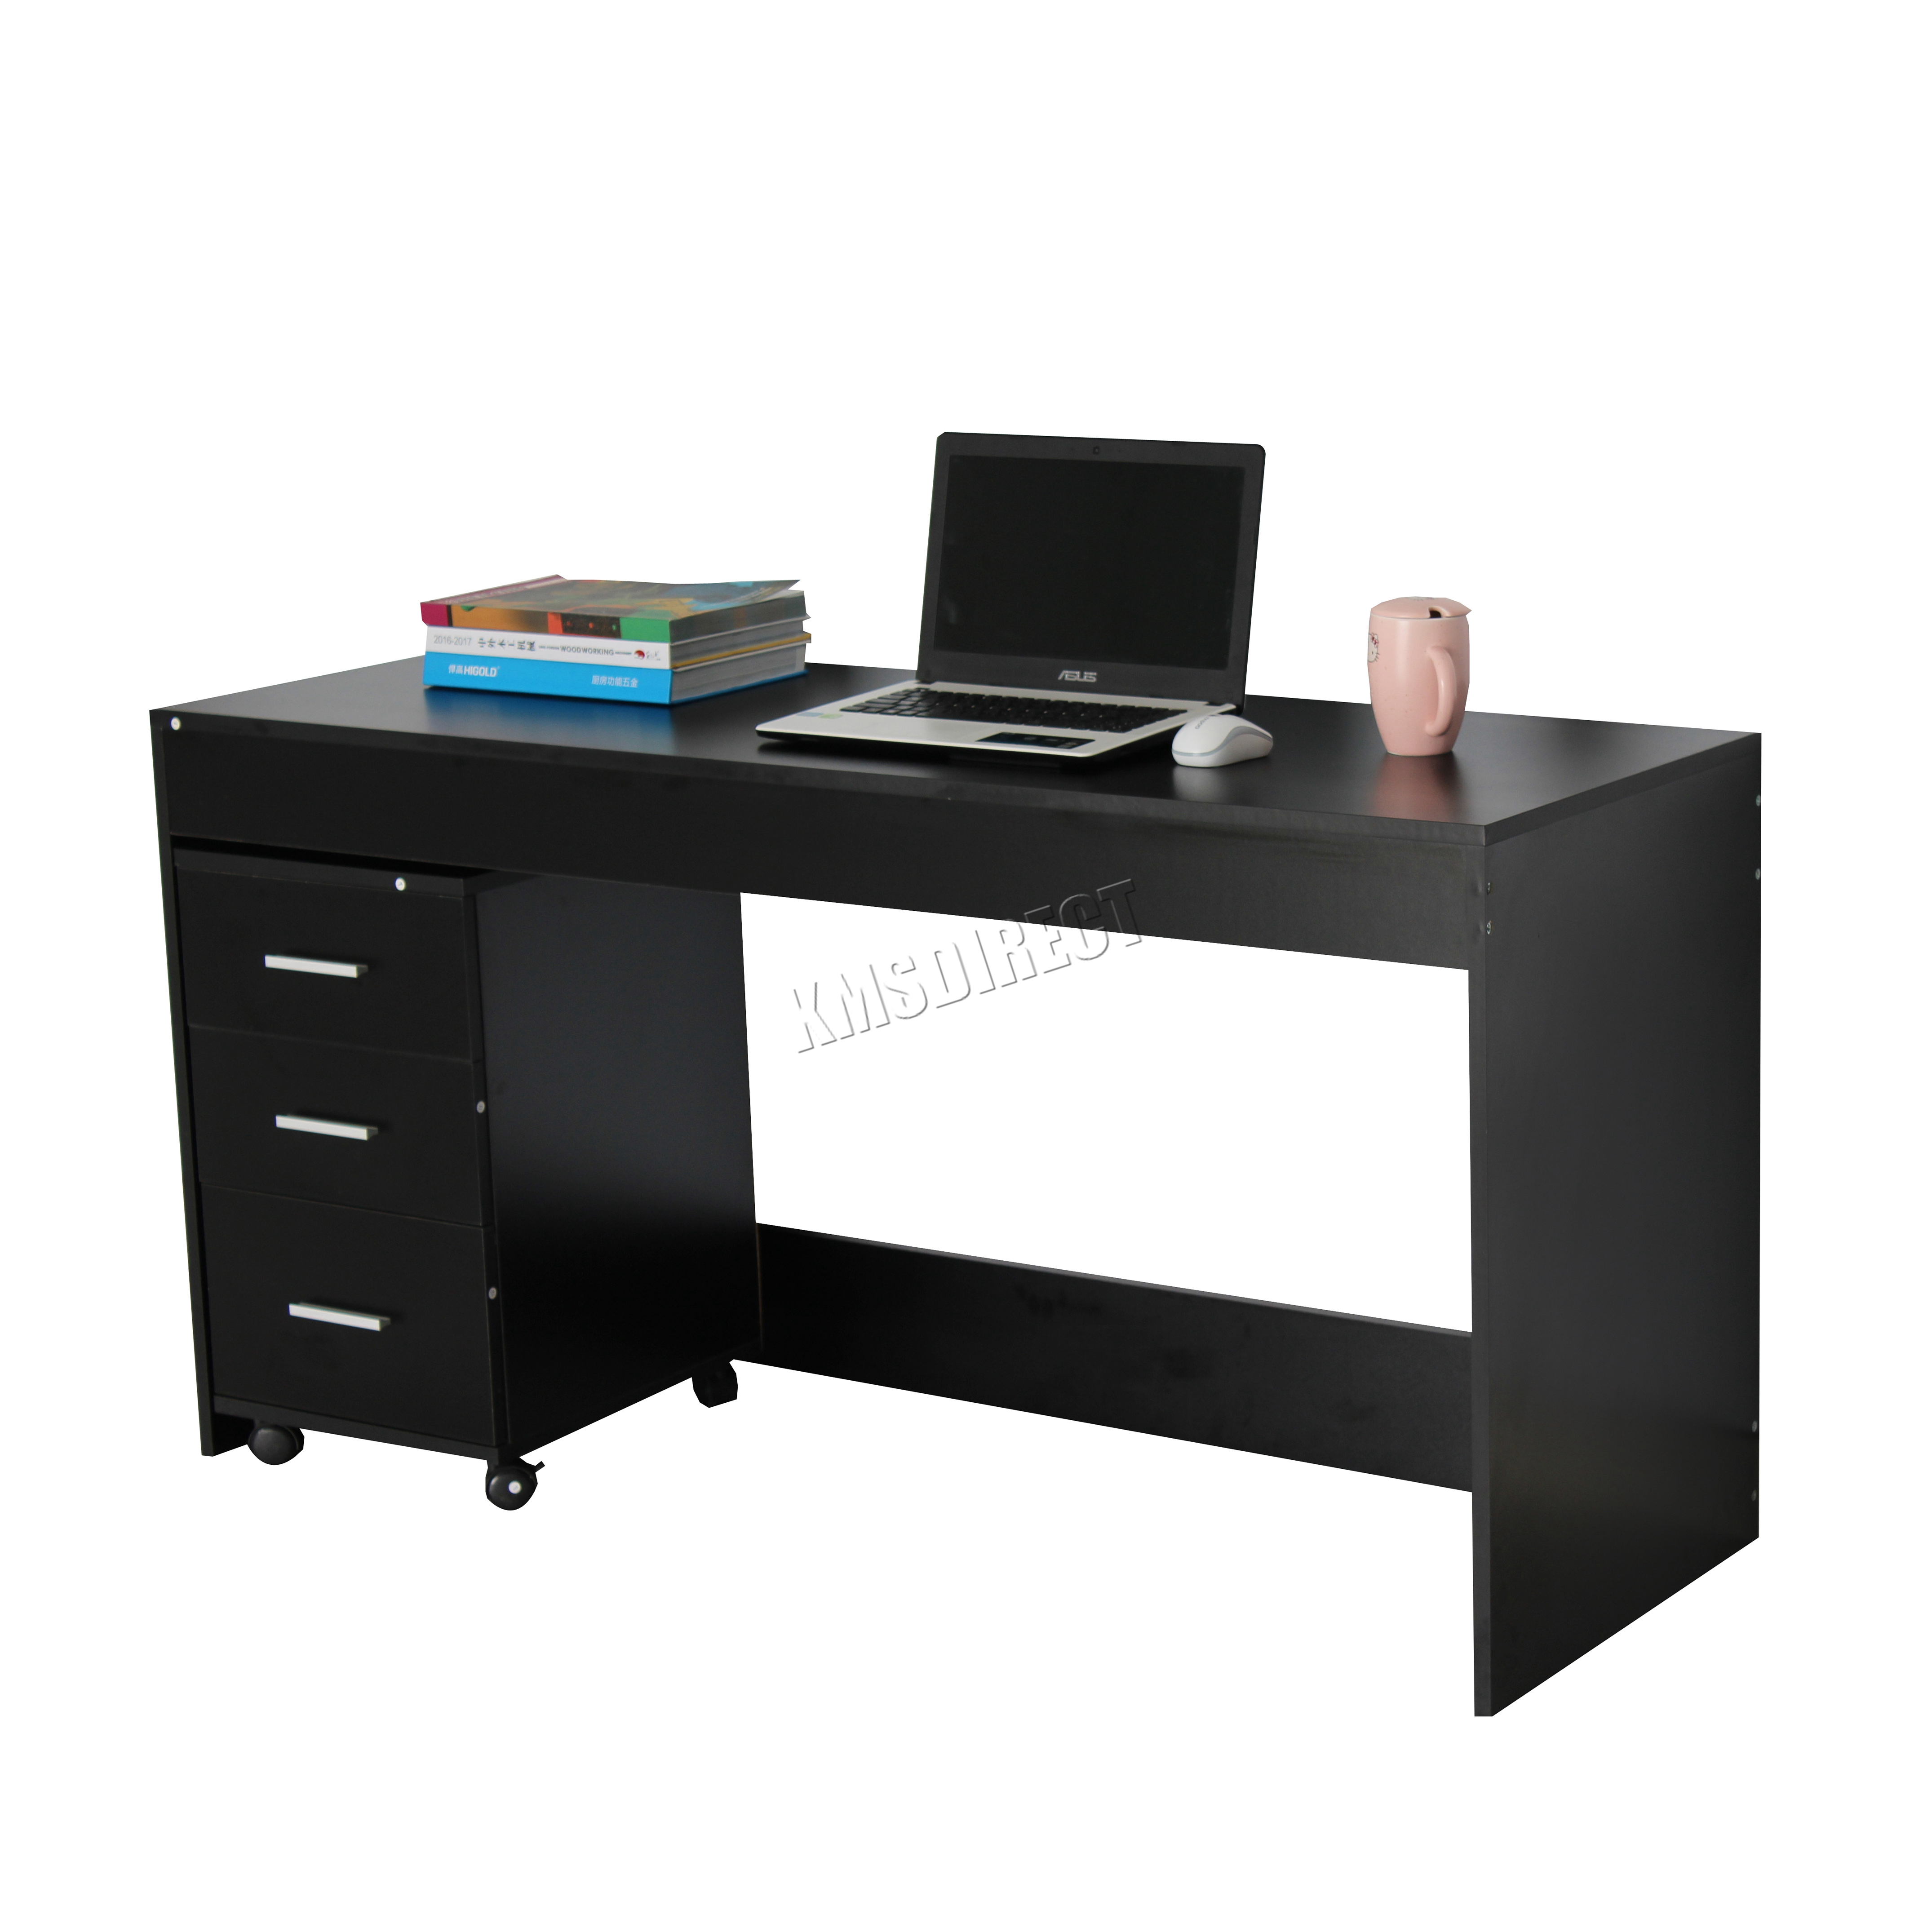 Office Computer Table On Westwoodcomputerdeskpctablewith3drawers Westwood Computer Desk Pc Table With Drawers Home Office Furniture